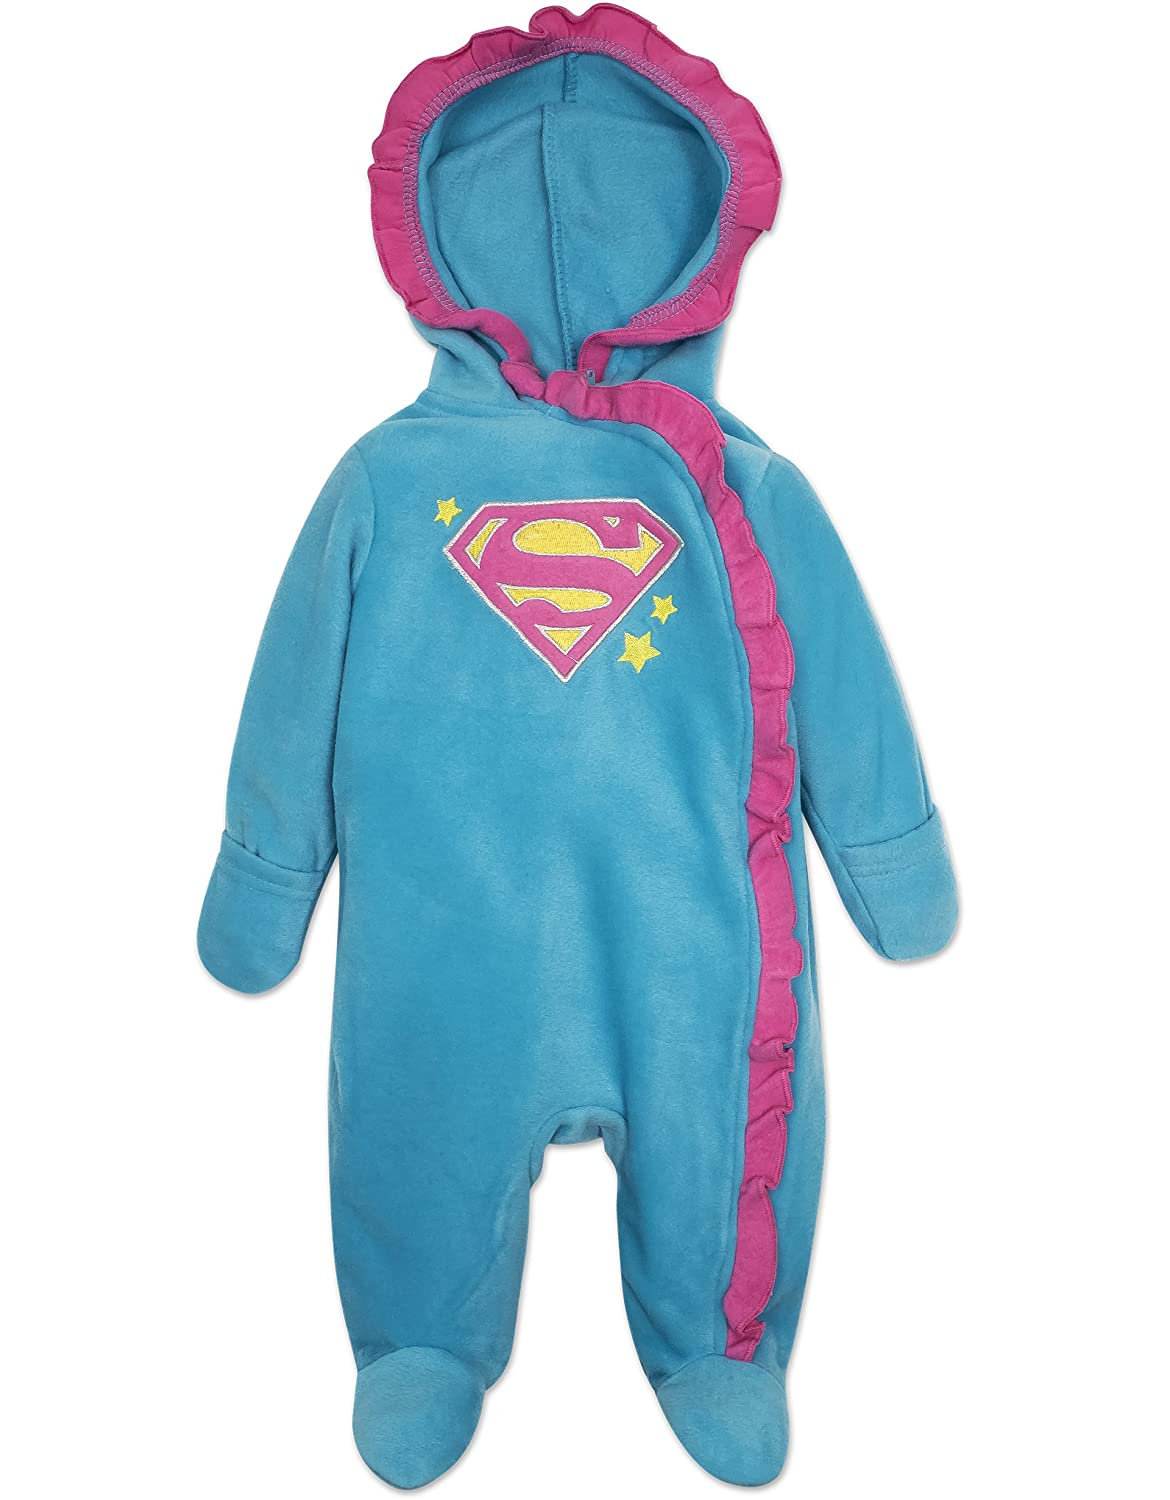 Baby Girls' Batgirl and Supergirl Pram Suit